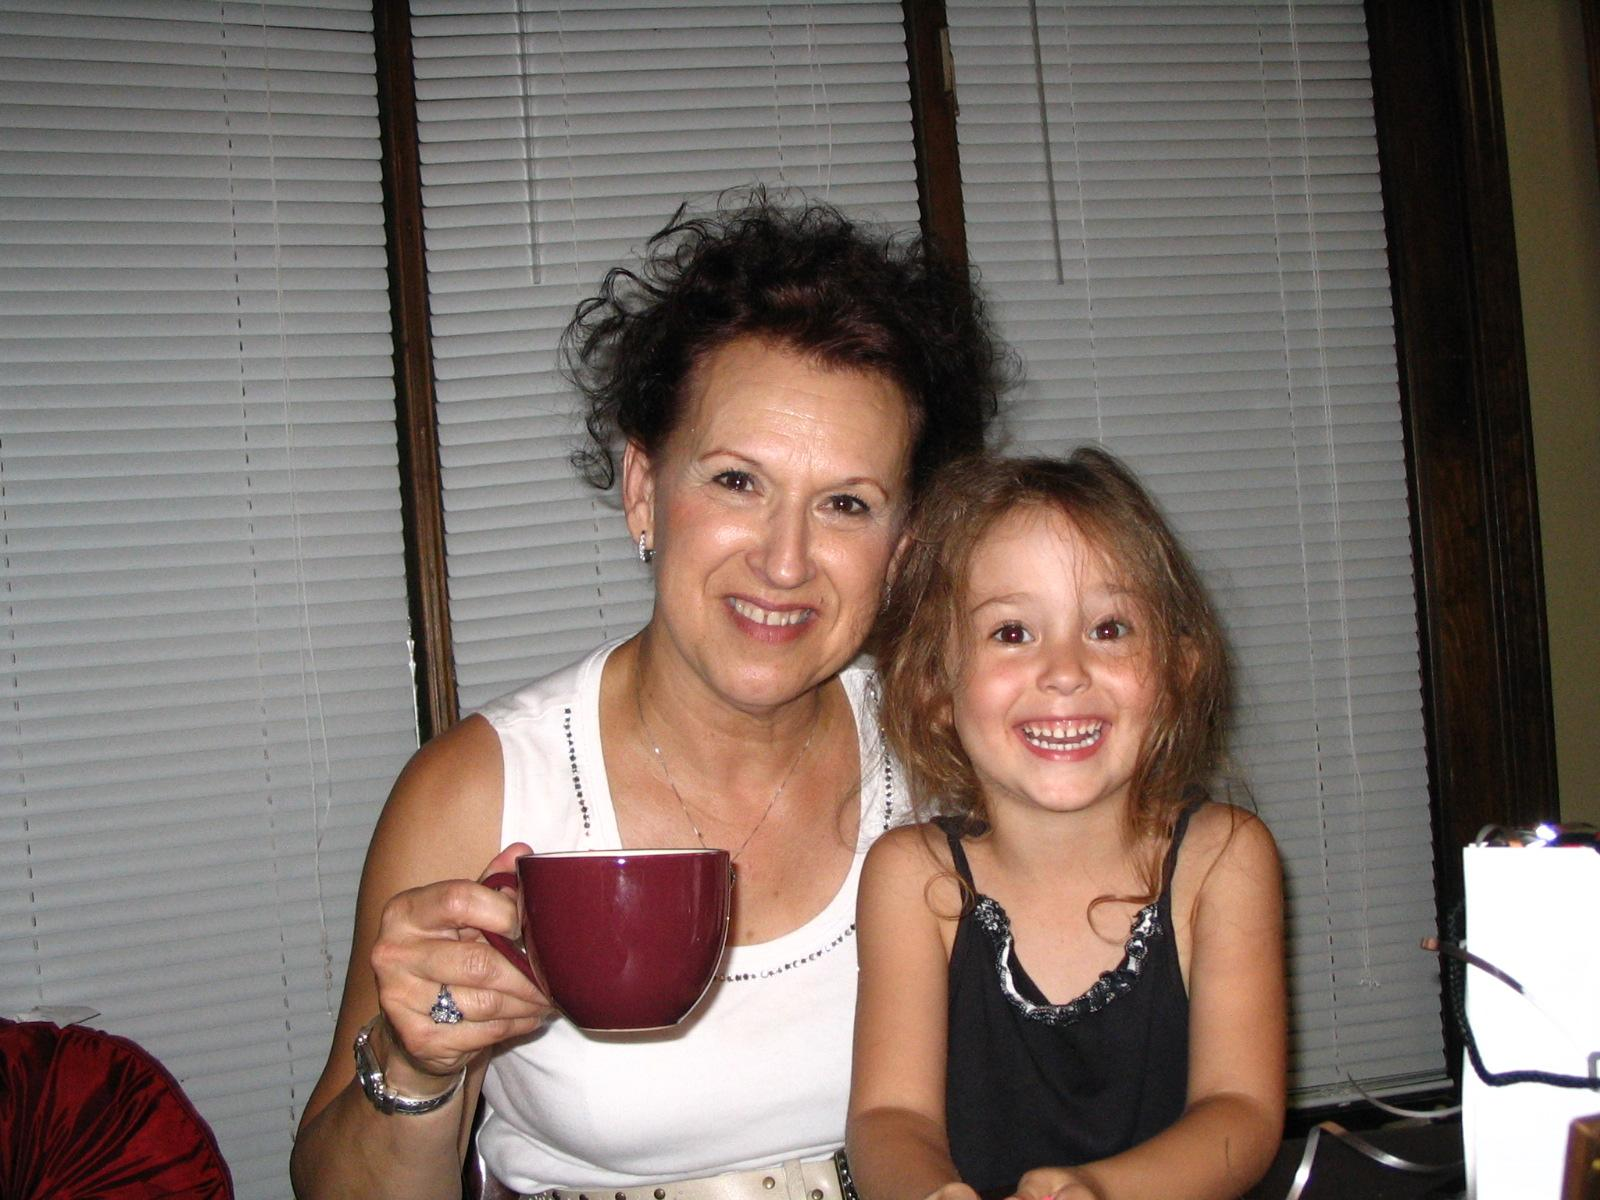 Xrac's wife and his granddaughter Jesse.  Xrac and his wife like their coffee.